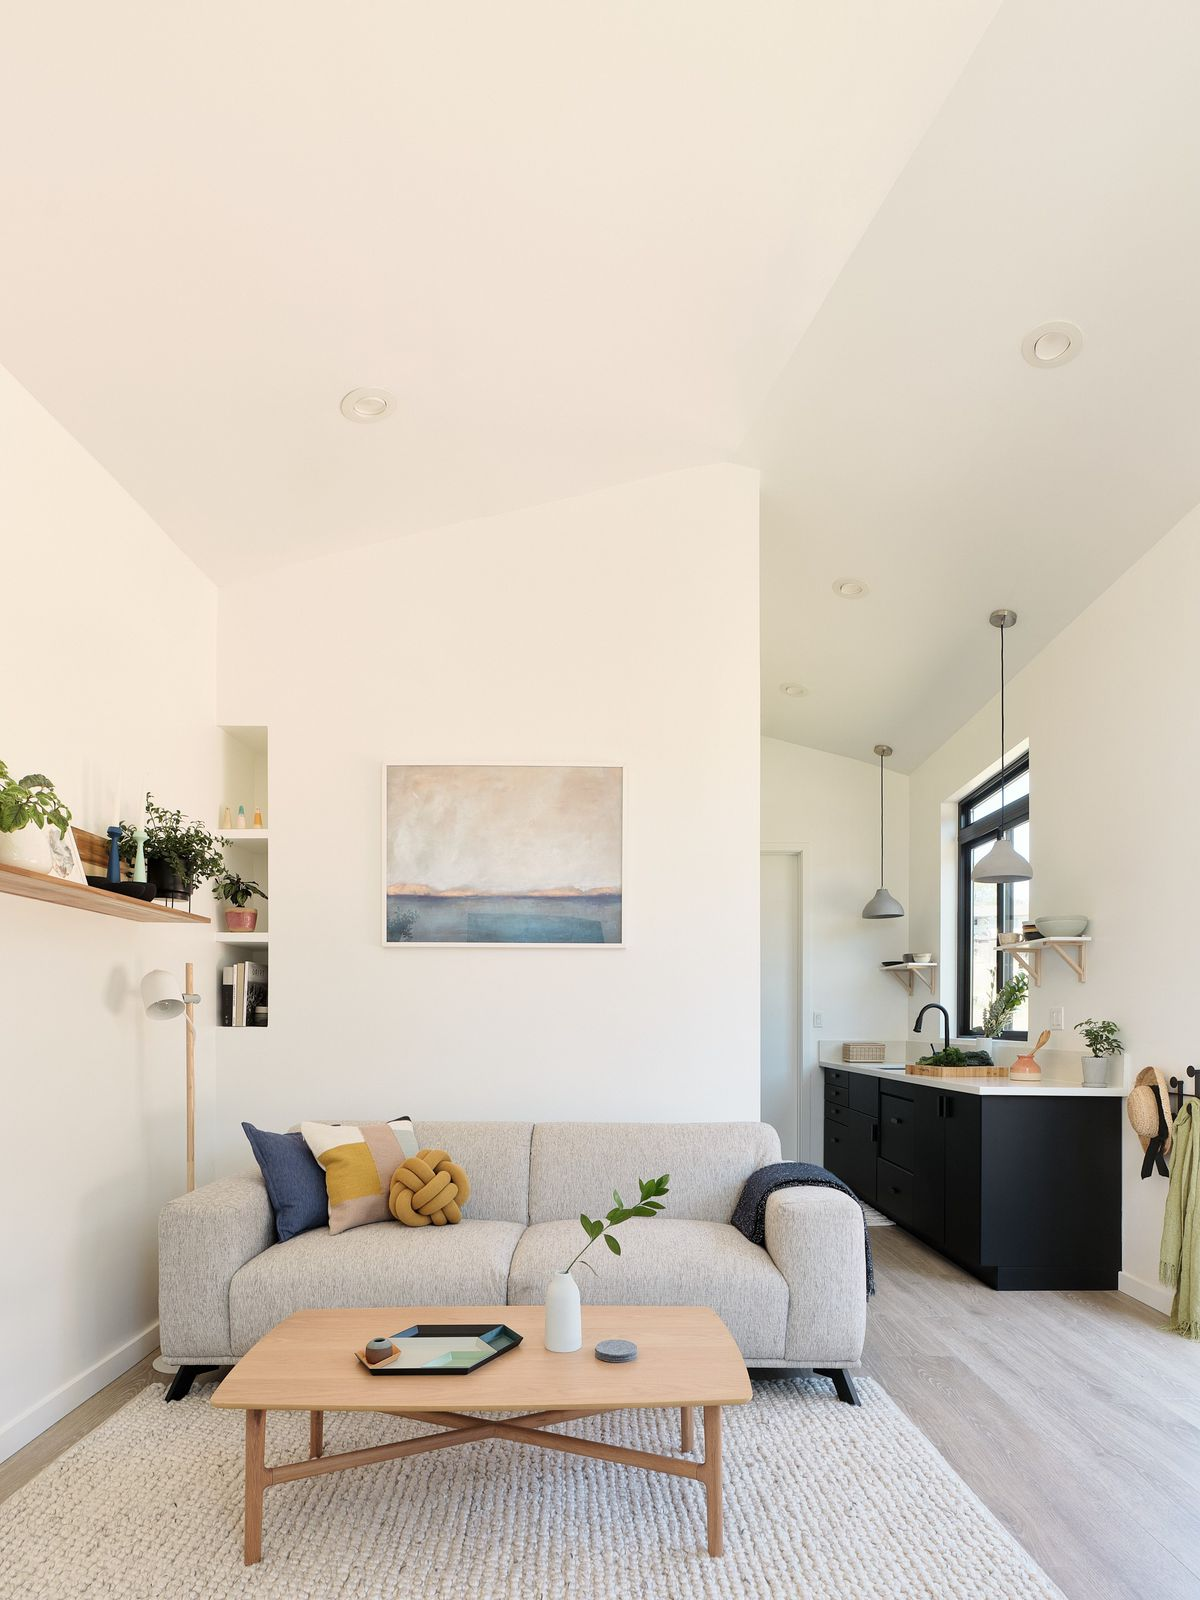 An airy living room has heigh ceilings, a gray two-seater sofa, pale wood coffee table, and a view of the kitchen area in one corner.